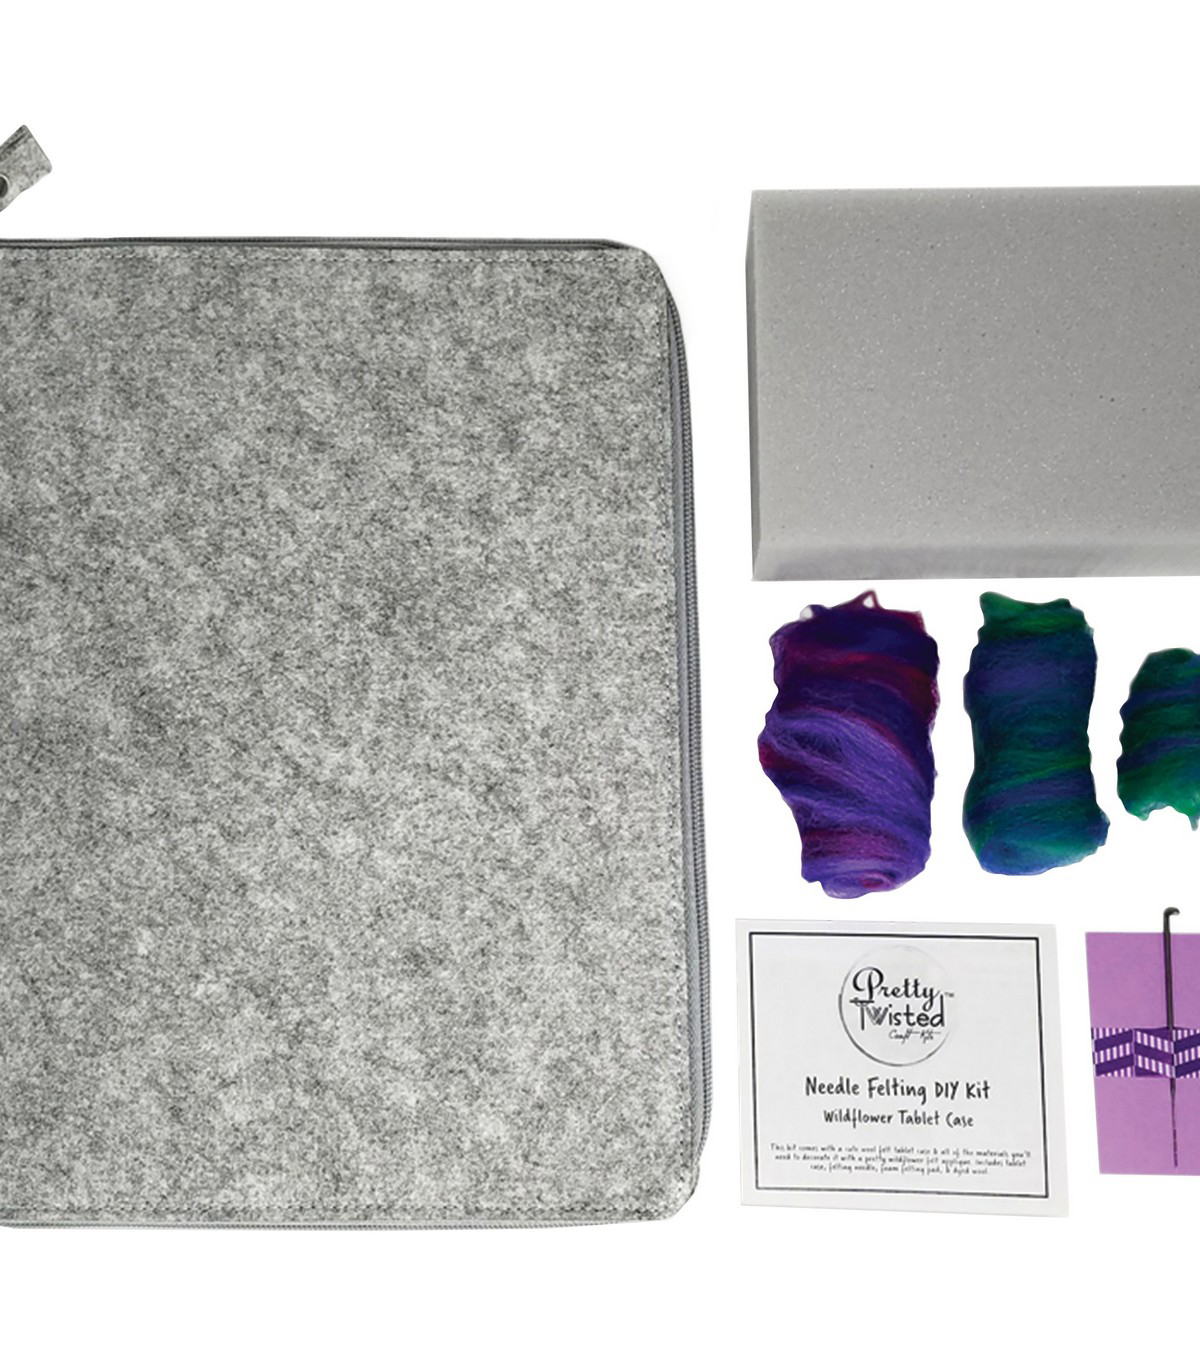 Pretty Twisted Needle Felting DIY Kit-Wildflower Tablet Case